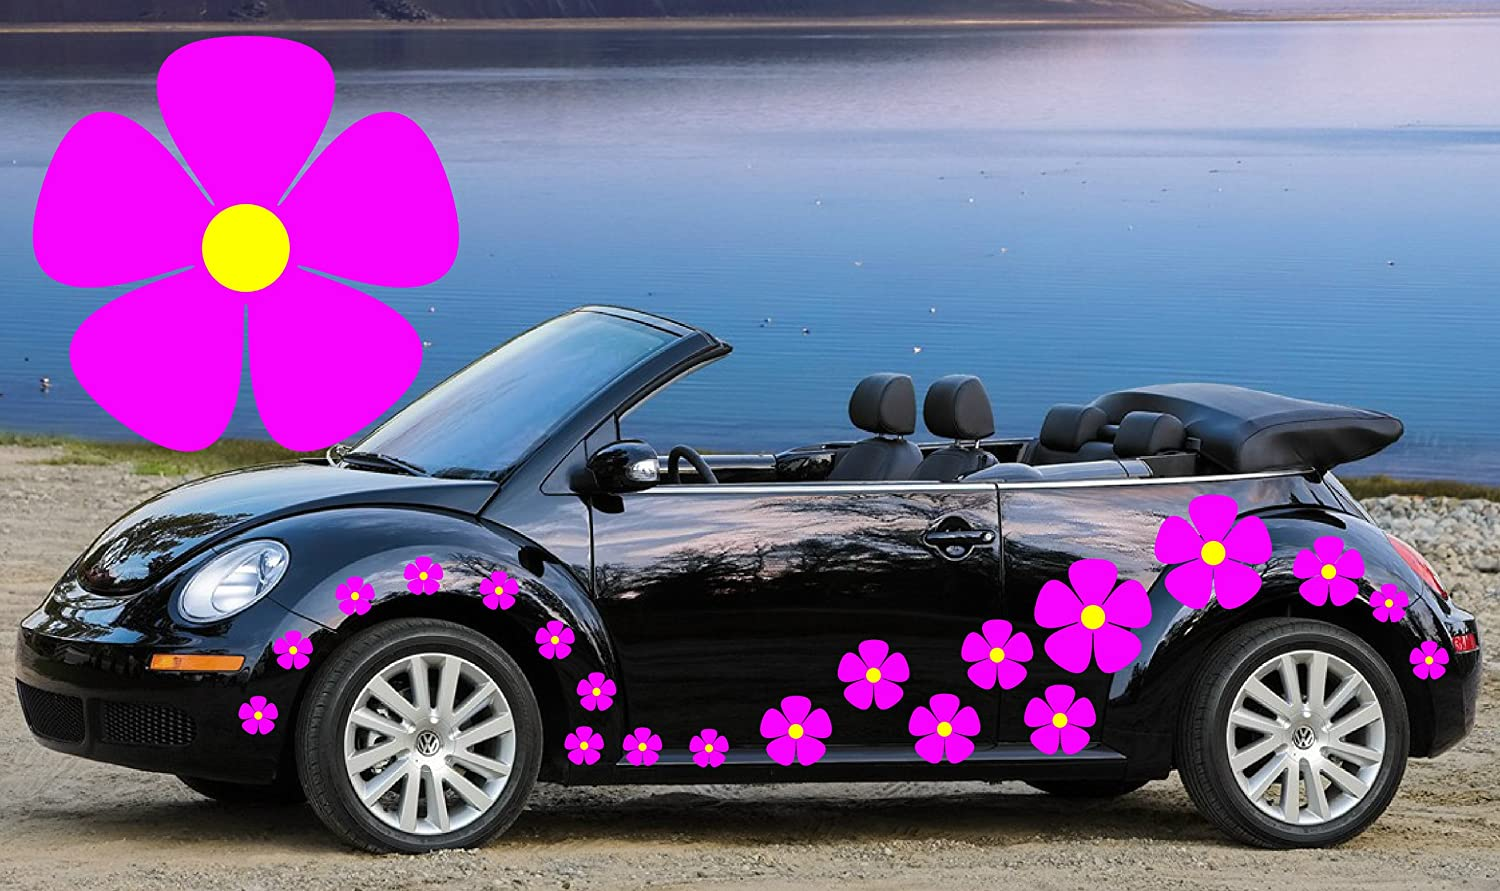 32 PINK /& SKY BLUE FLOWER CAR DECALS,STICKERS,CAR GRAPHICS,DAISY STICKERS